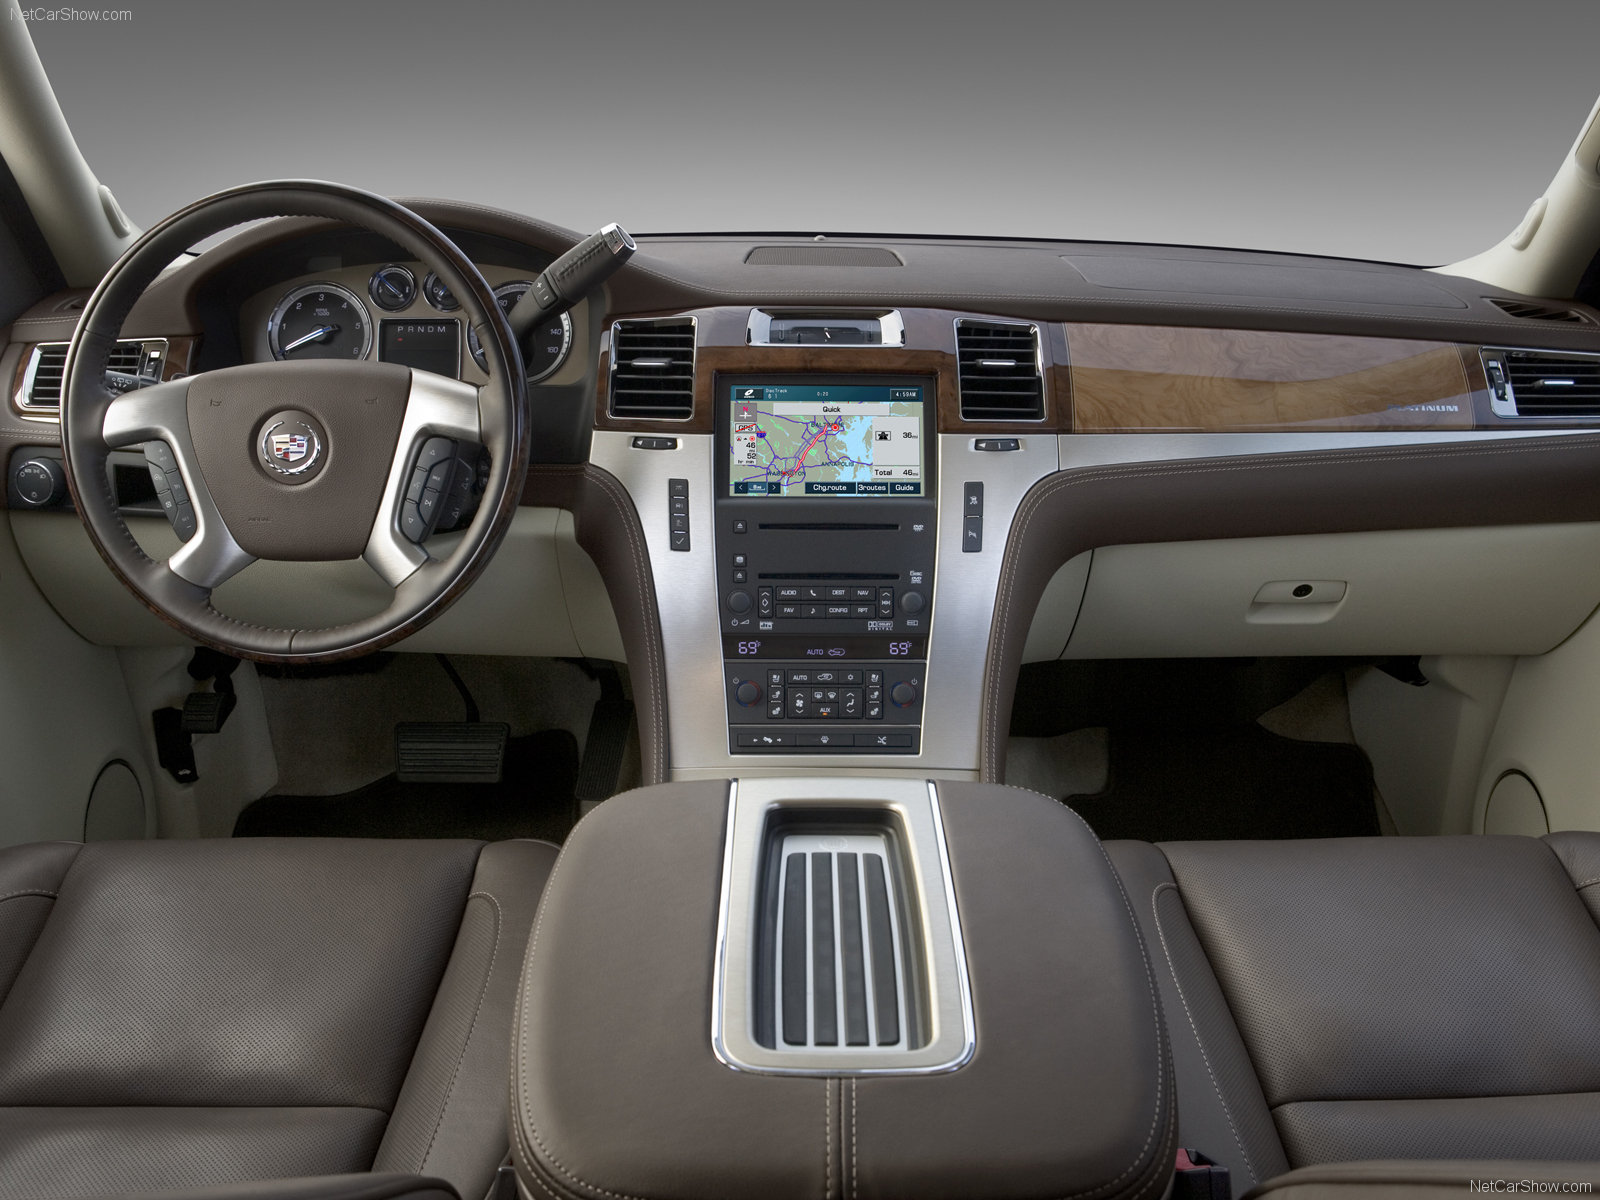 Tuning Cadillac Escalade Suv 2012 Online Accessories And Spare Parts For Tuning Cadillac